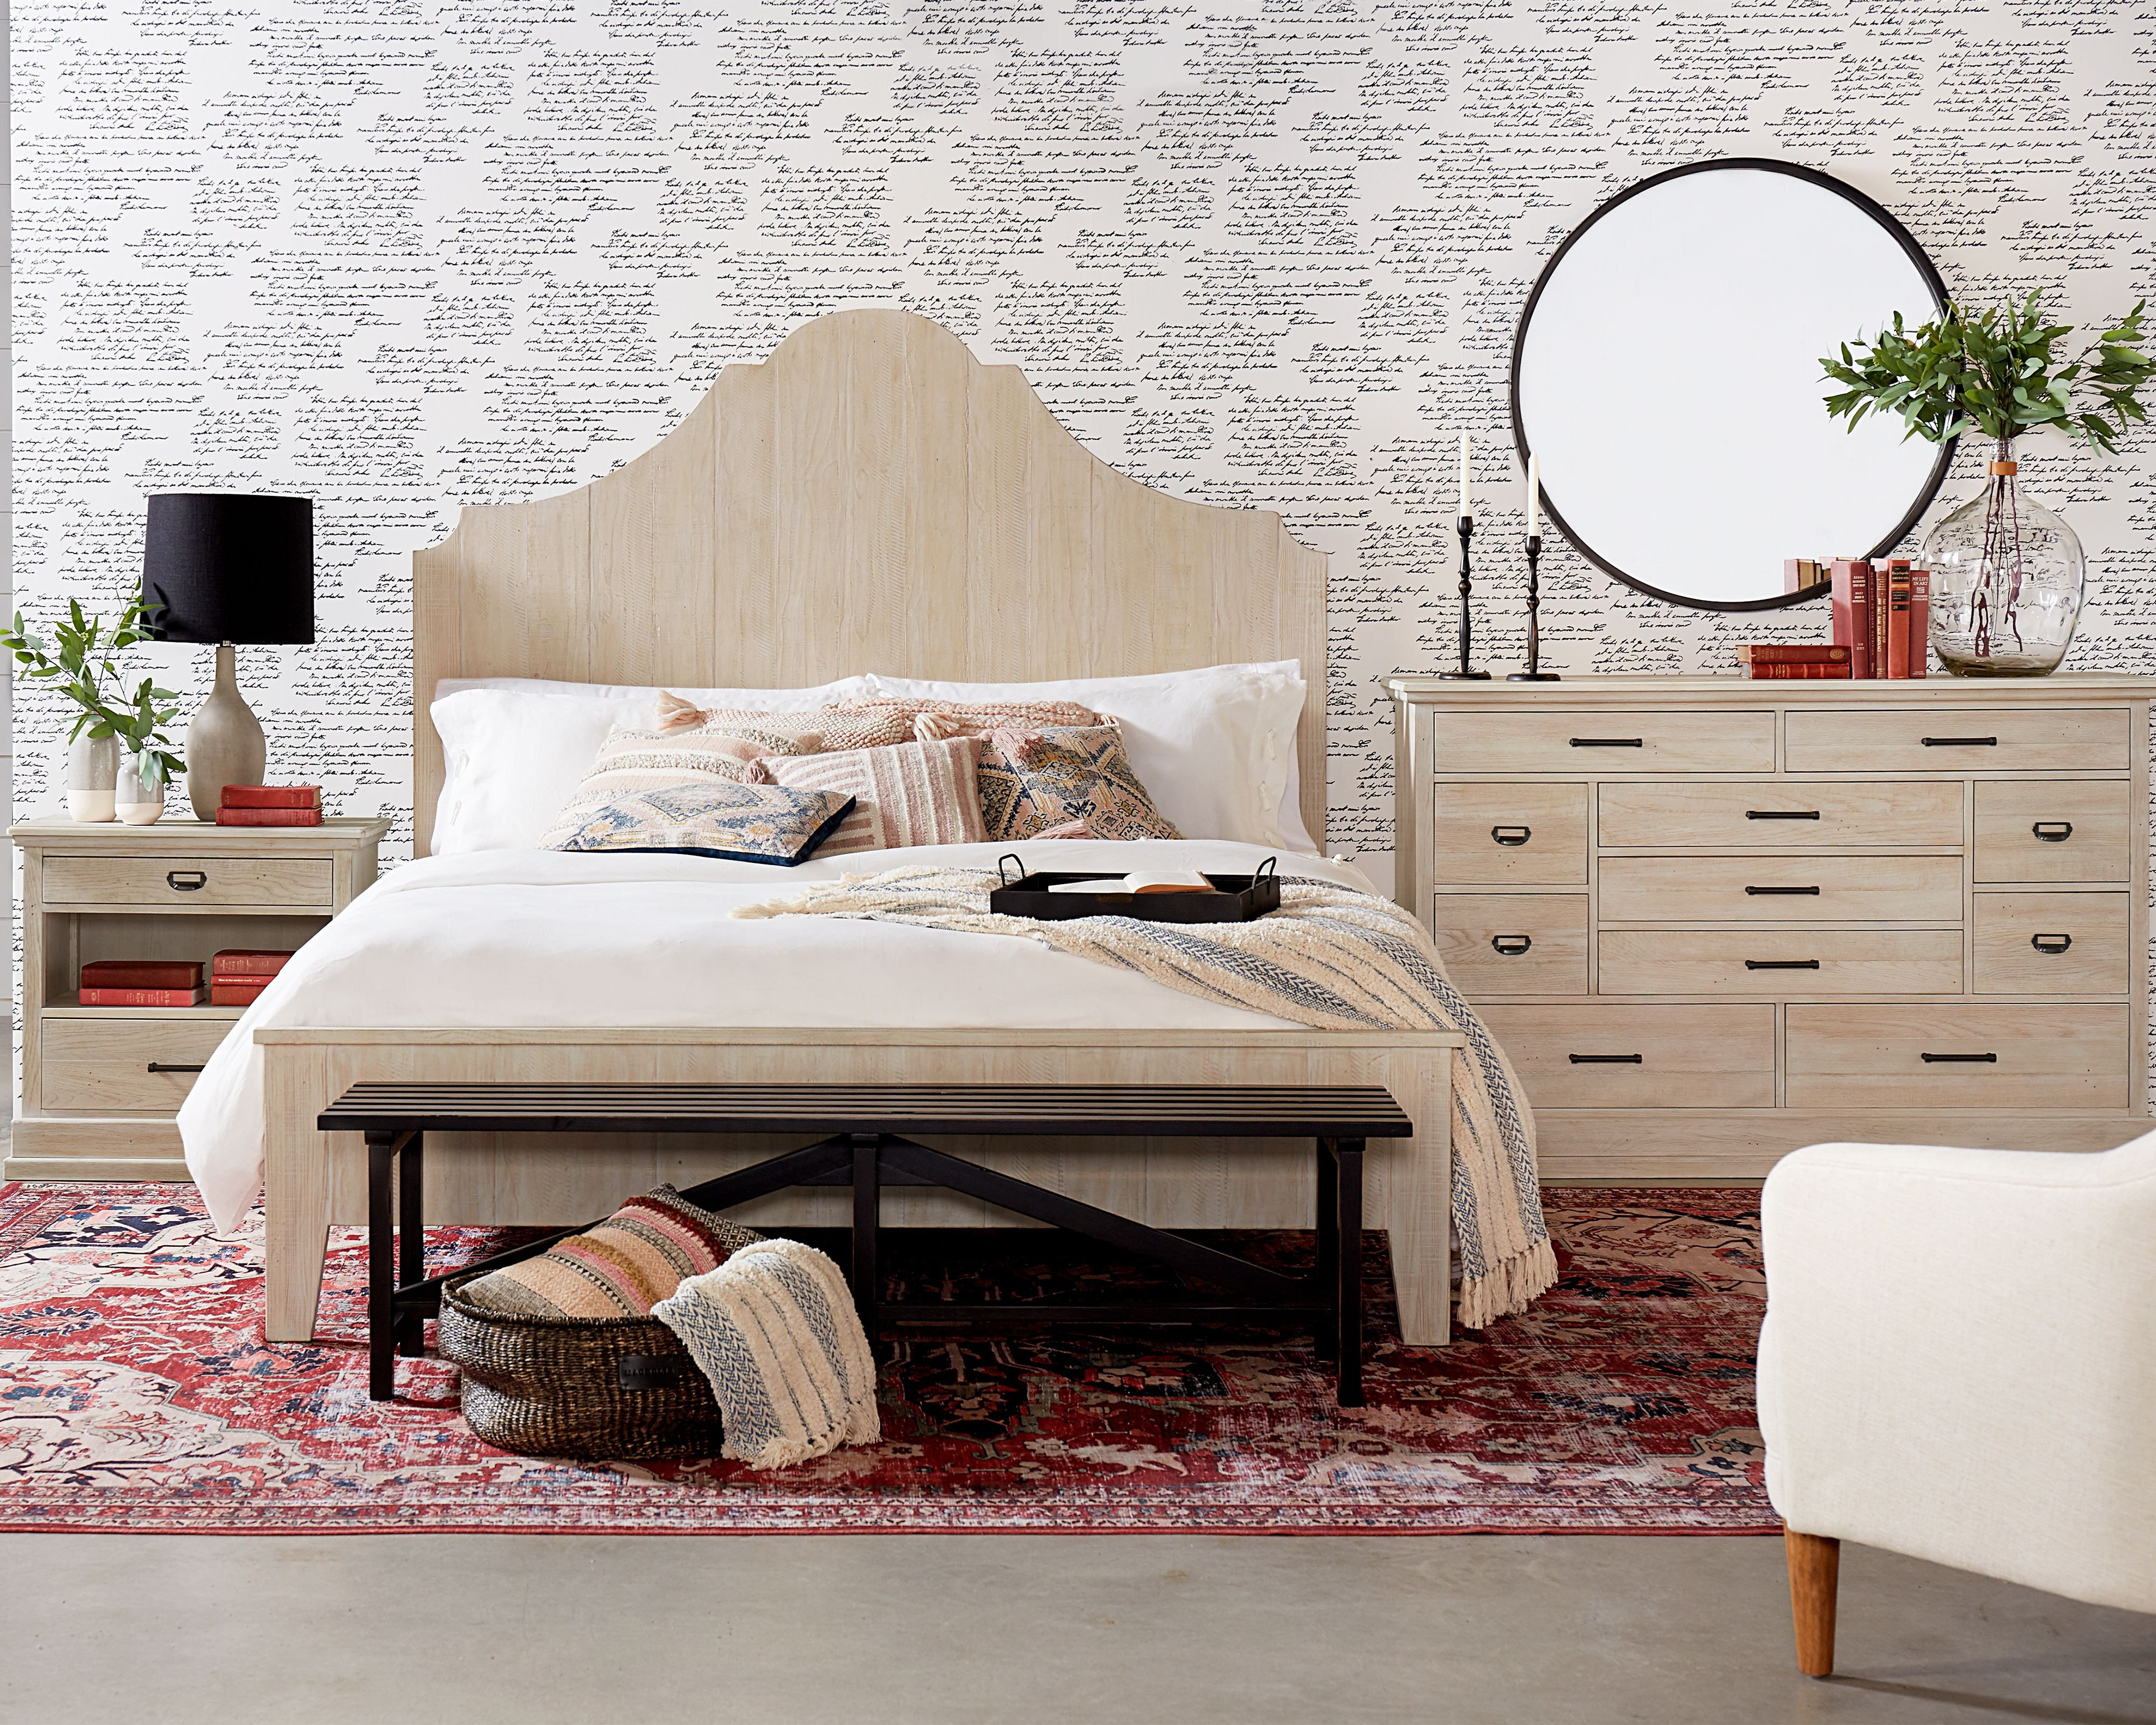 Farmhouse Style Bedroom Set Lovely Daybreak Bed with ashland Dresser Magnolia Home